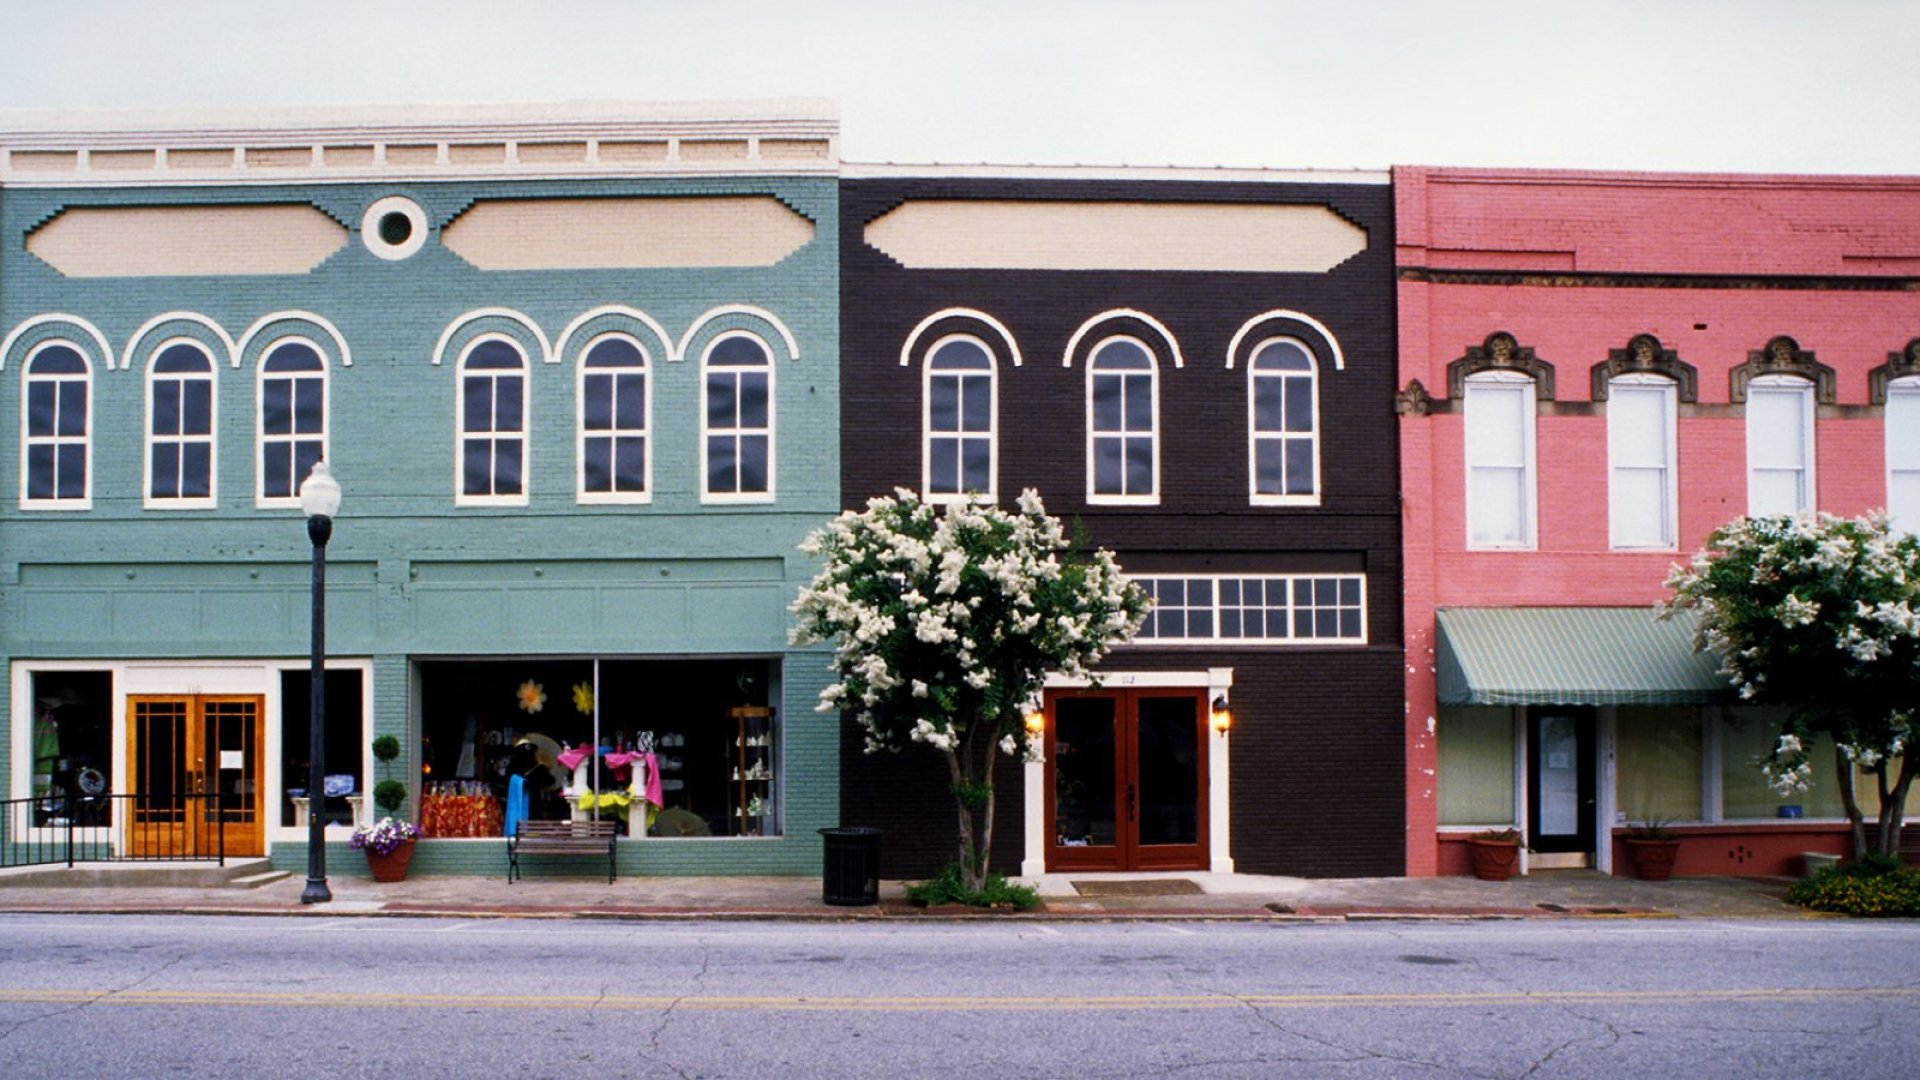 Are These the Best Main Street Businesses in America? Their Customers Sure Think So